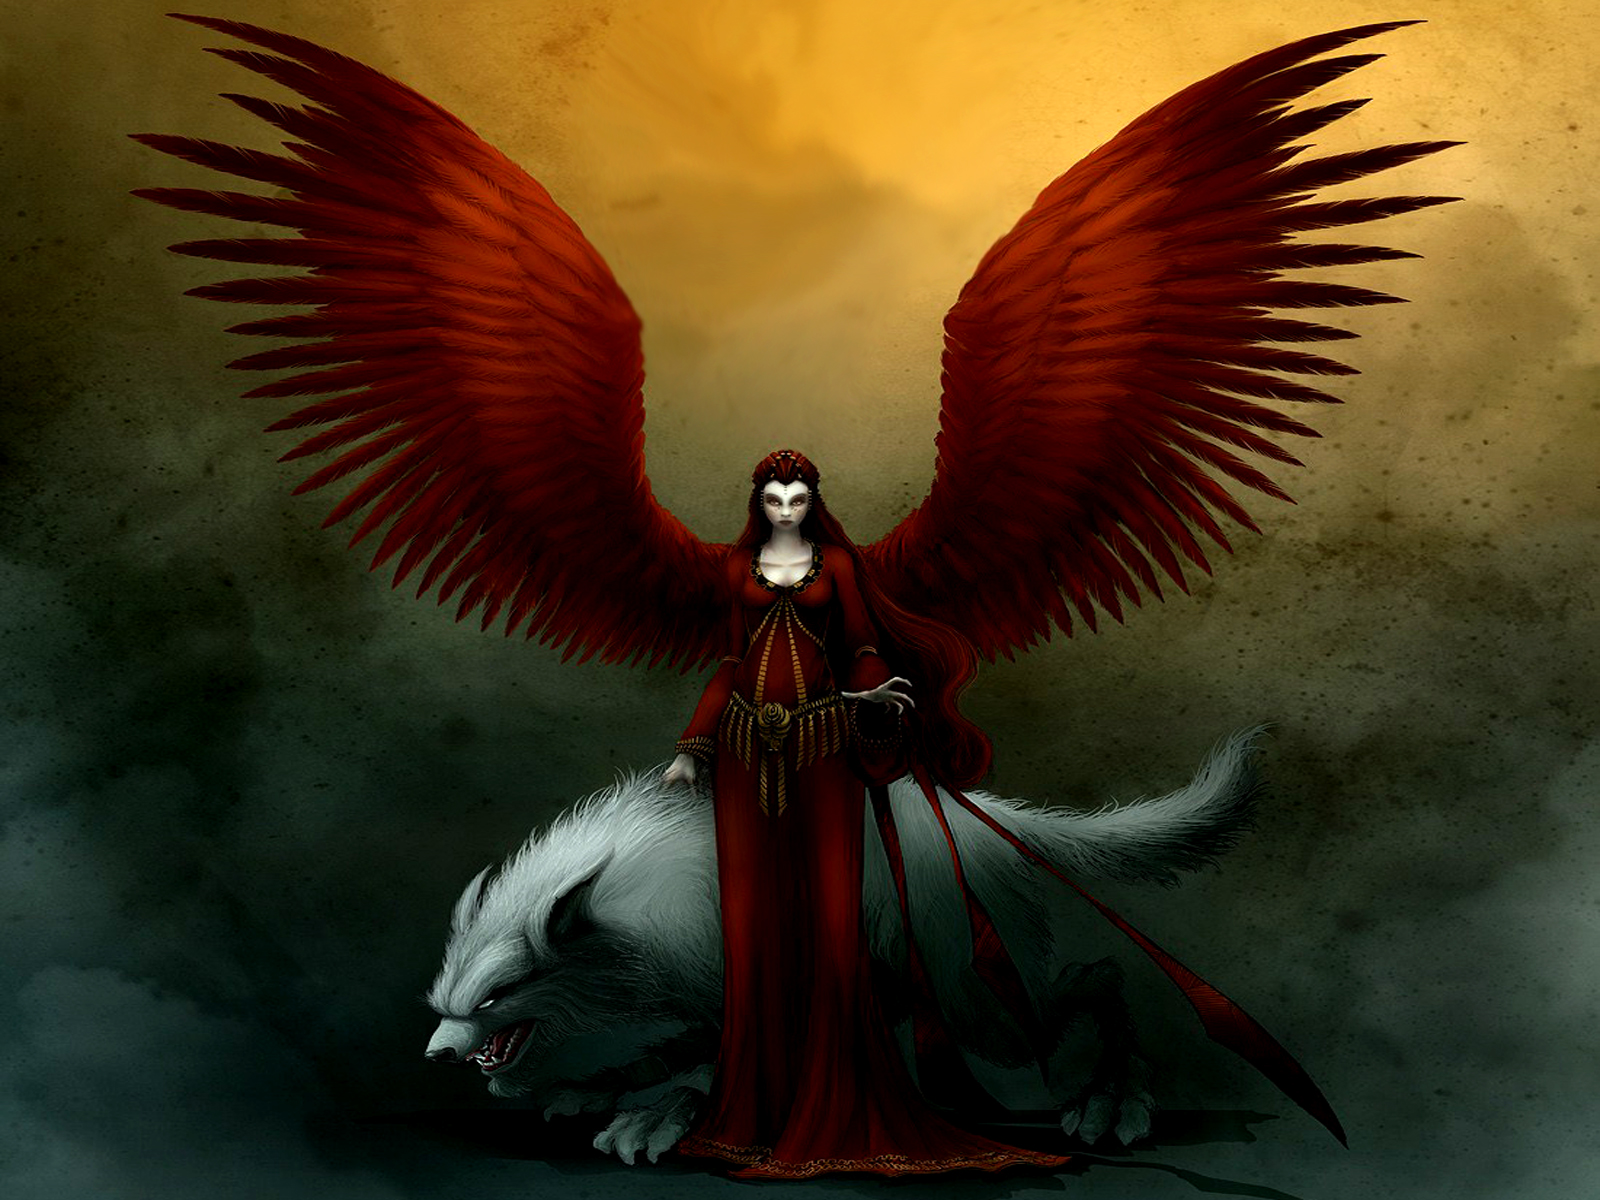 Donker - Engel  Mythical Rood Donker Wings Evil Woman Wallpaper